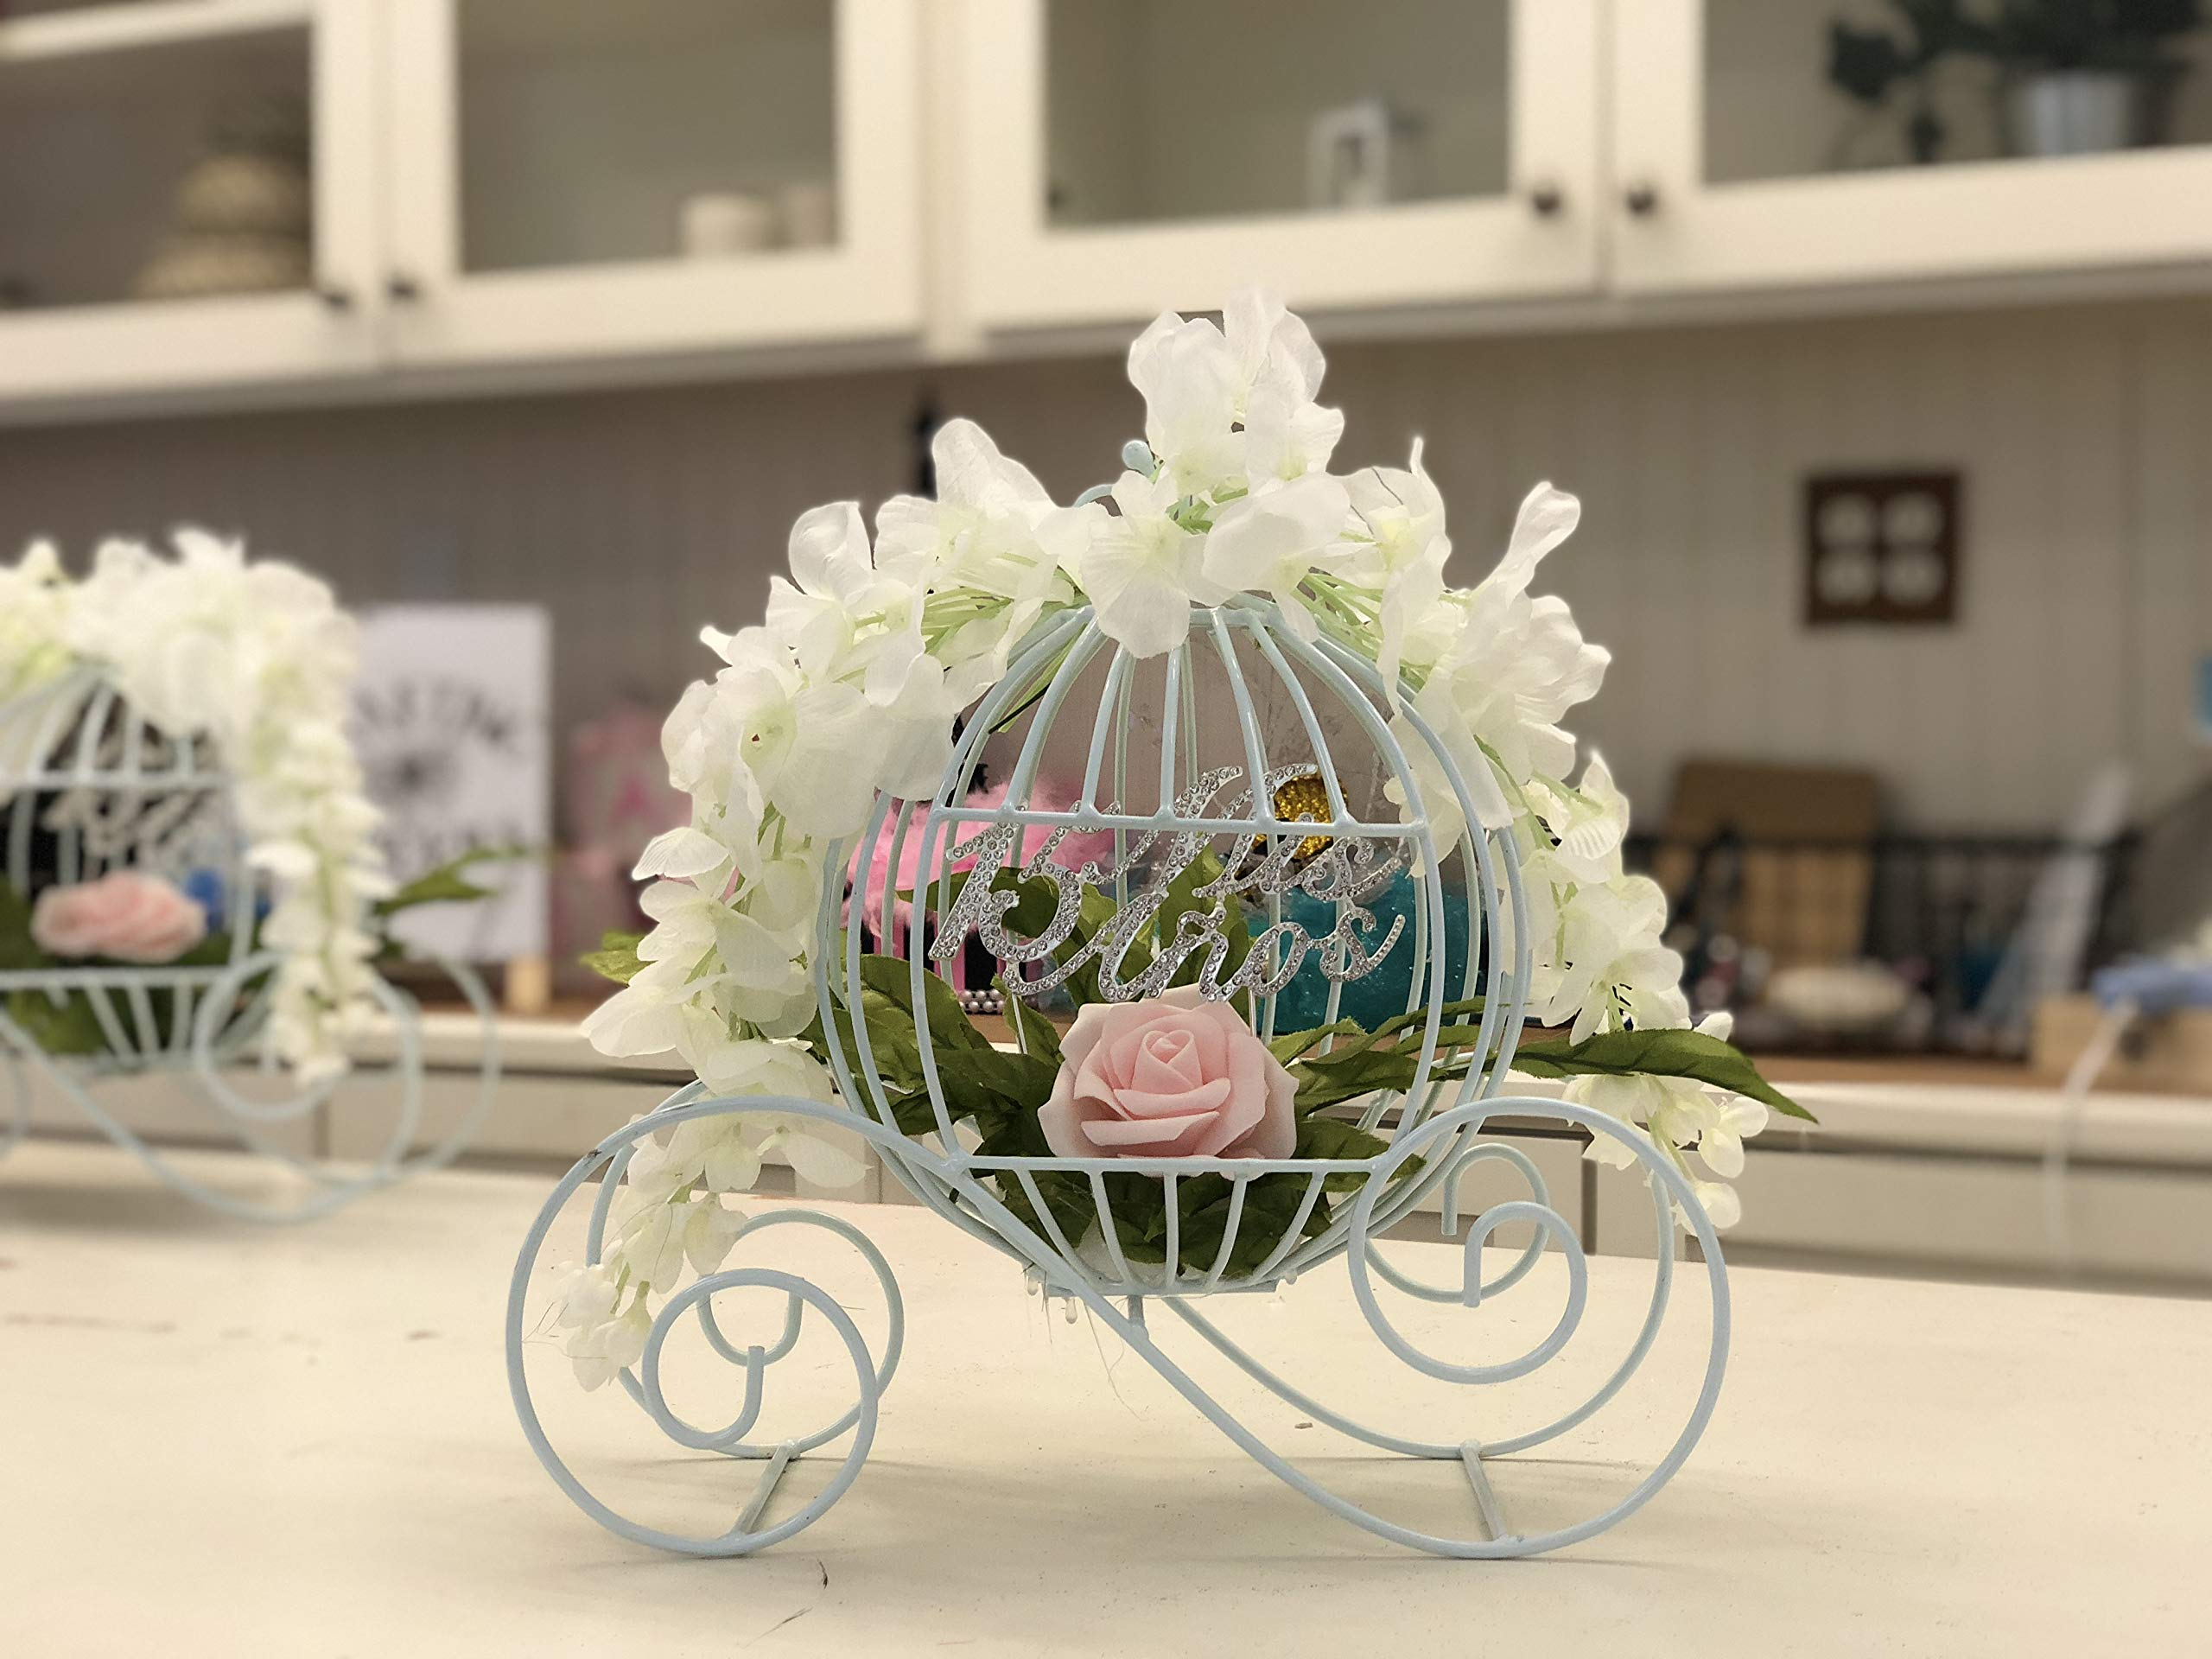 Decorative White Metal Cinderella Carriage for Decorations, Weddings, Sweet 16, or Table Centerpieces (Small - 12'' Inches)